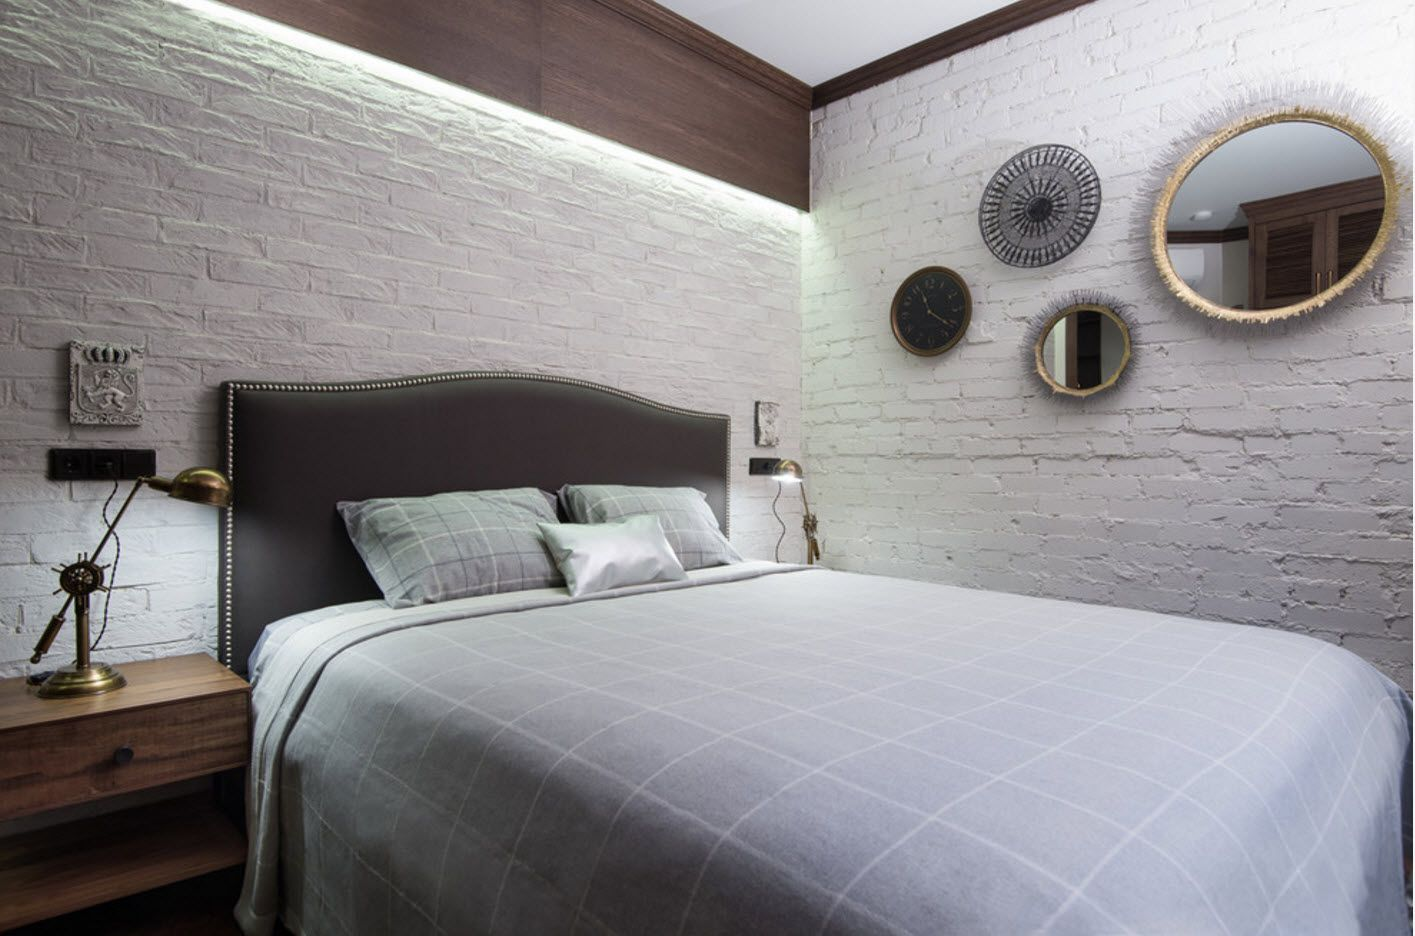 Modern Bedroom Interior Decoration & Design Ideas 2017. Headboard upholstered cover and textured wall trimming of the modern minimalistic bedroom